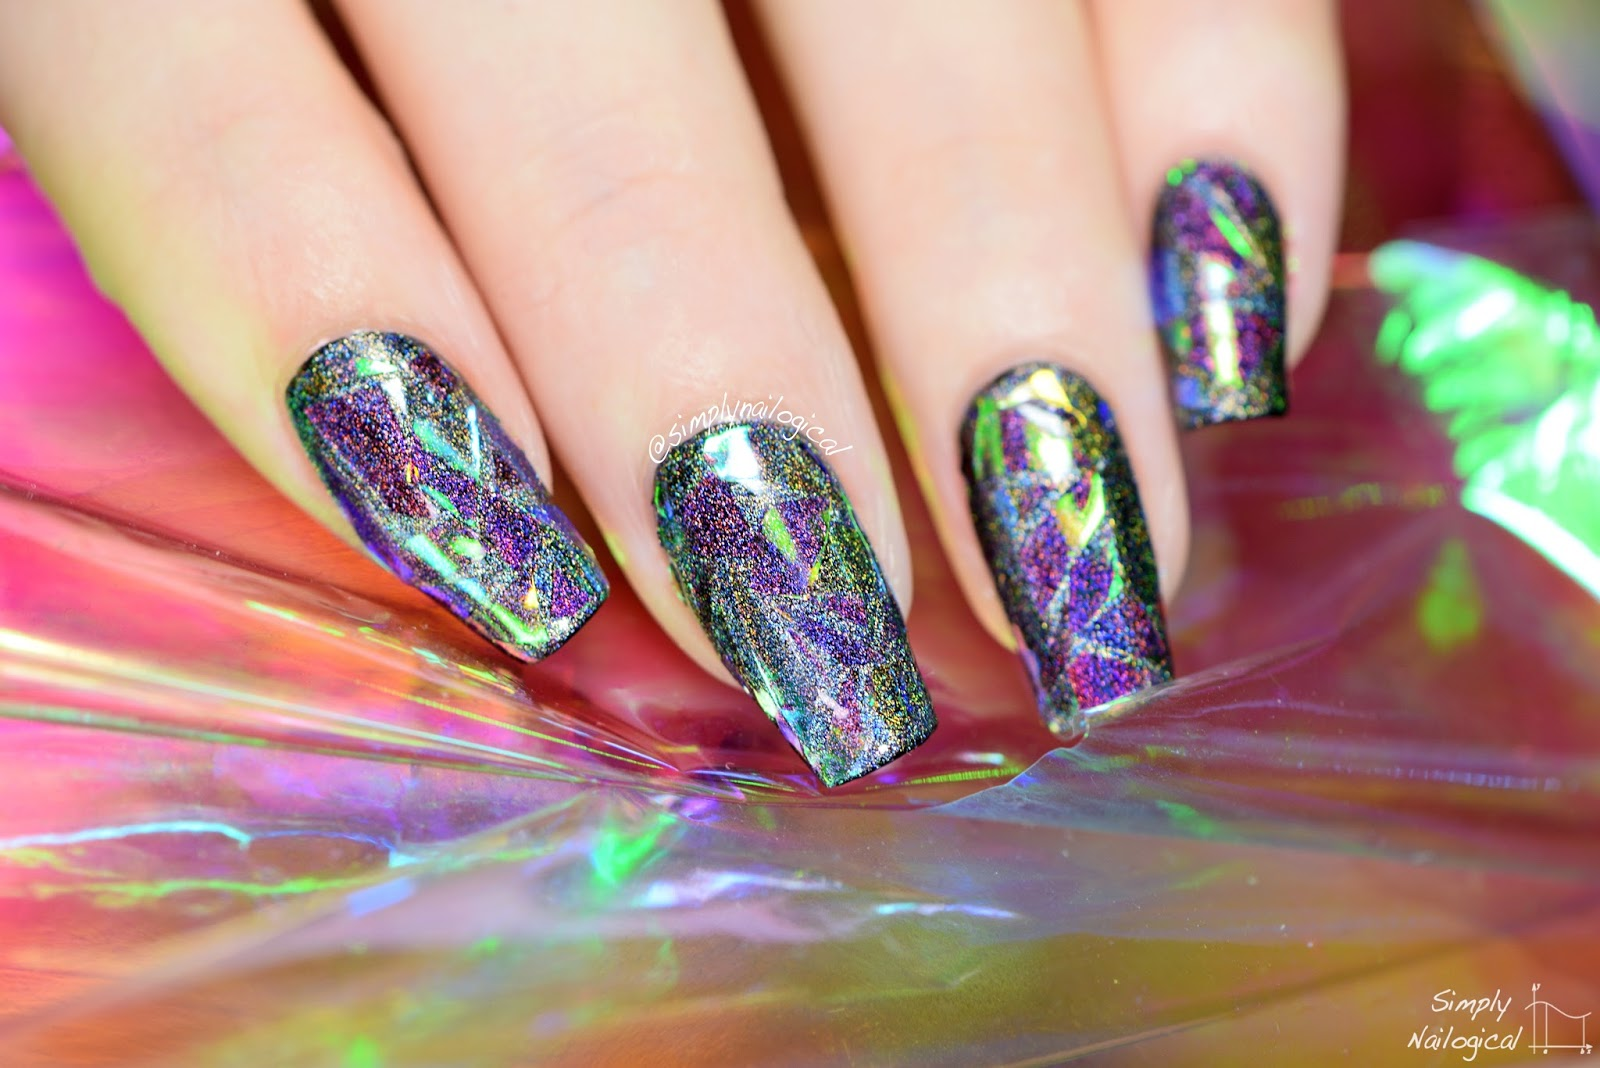 Simply Nailogical Holographic Shattered Glass Nails So Badass Rn